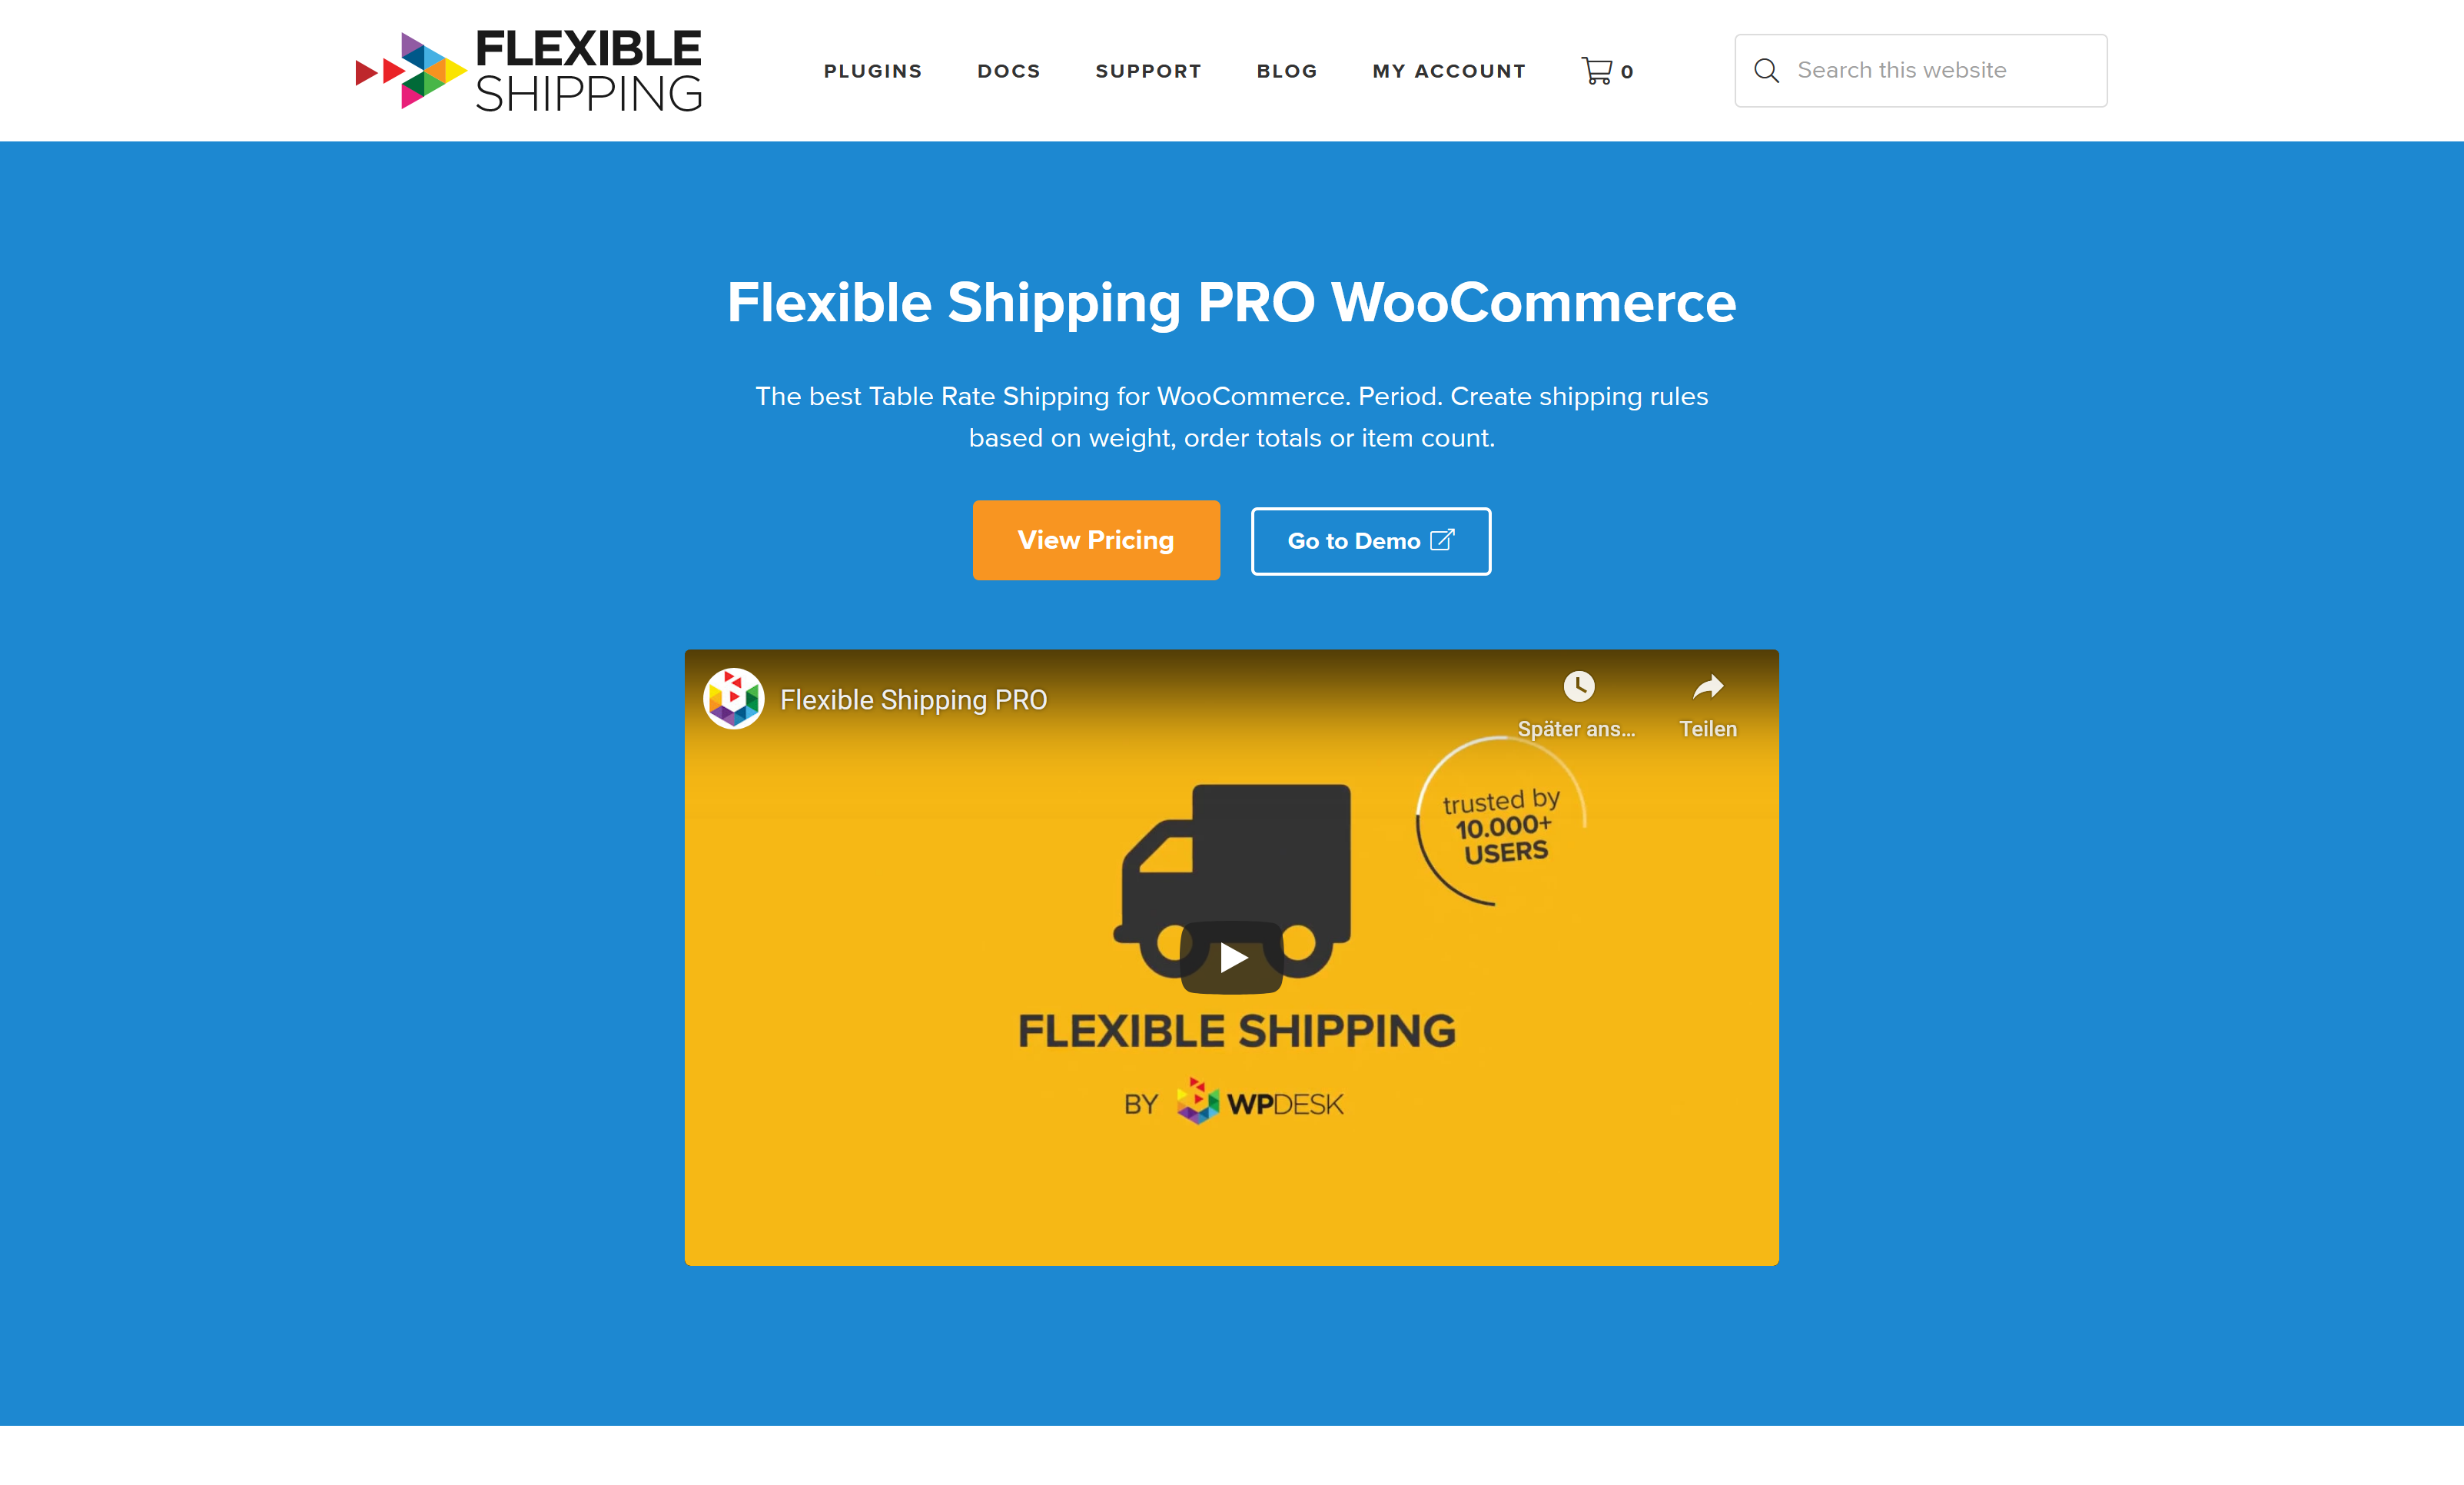 Flexible Shipping Table Rate PRO WooCommerce 2.0.0